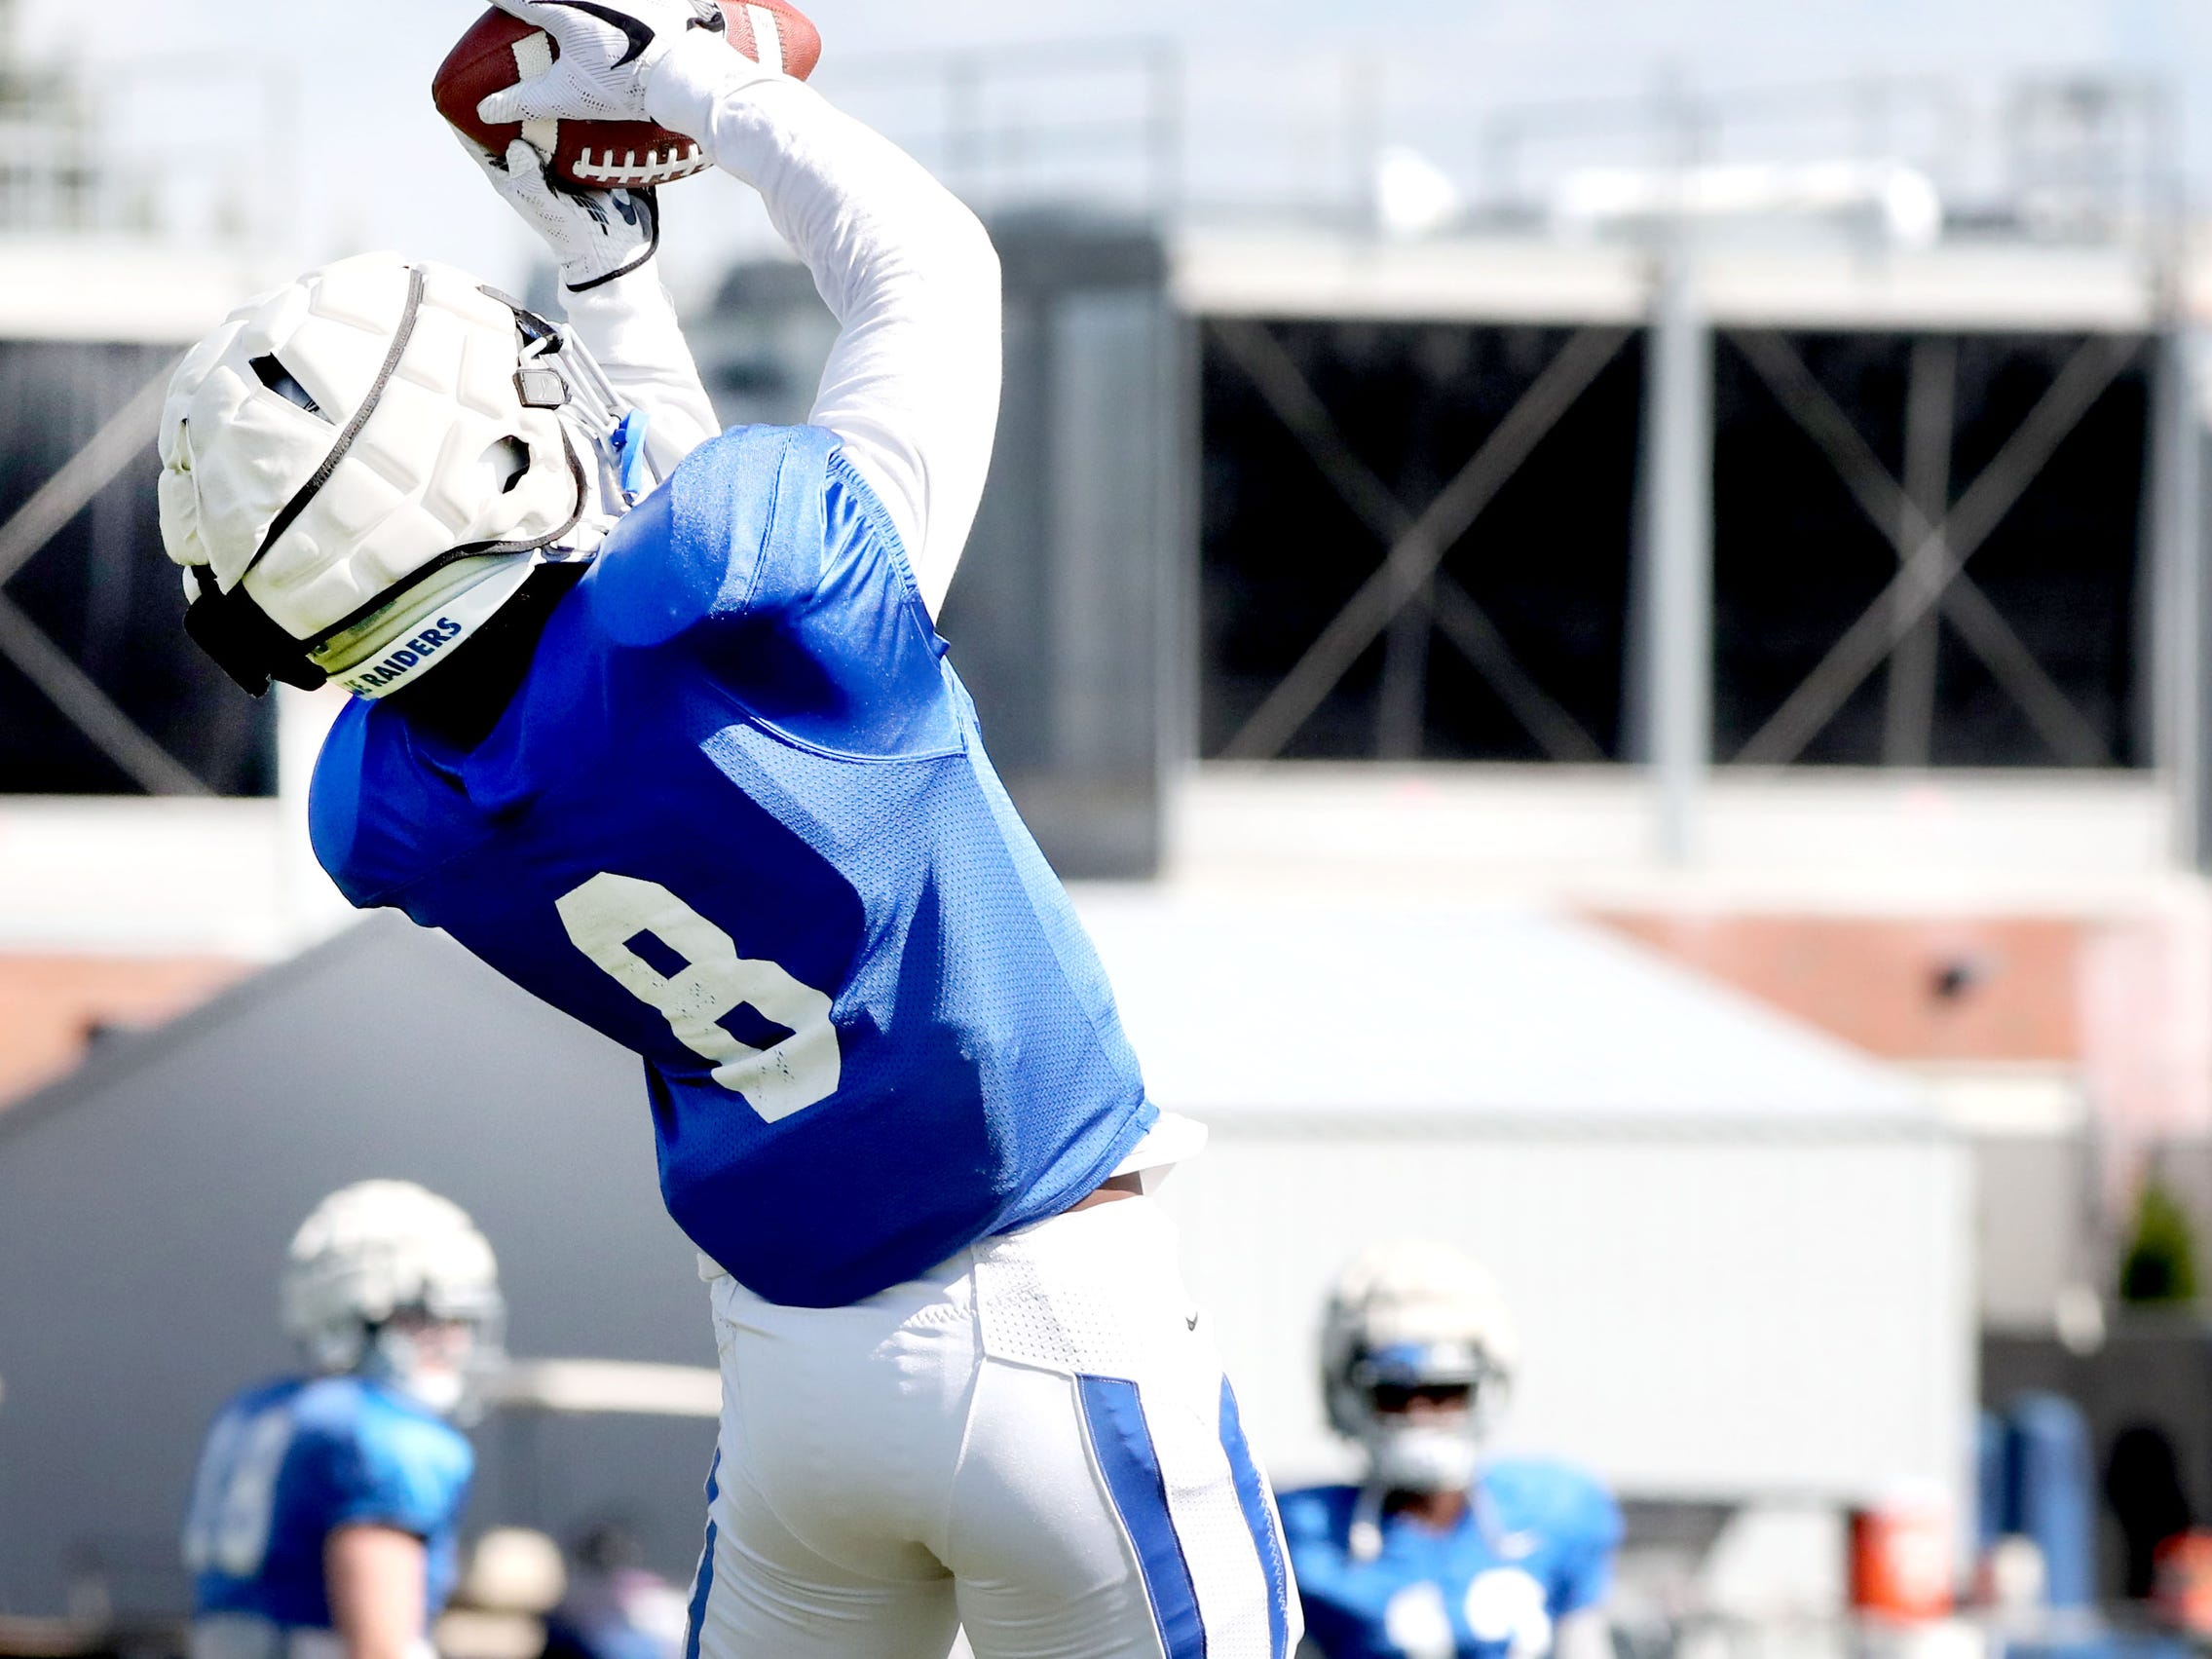 MTSU's wide receiver Ty Lee (8) catches the ball during MTSU's football practice, in Murfreesboro on Tuesday April 9, 2019.